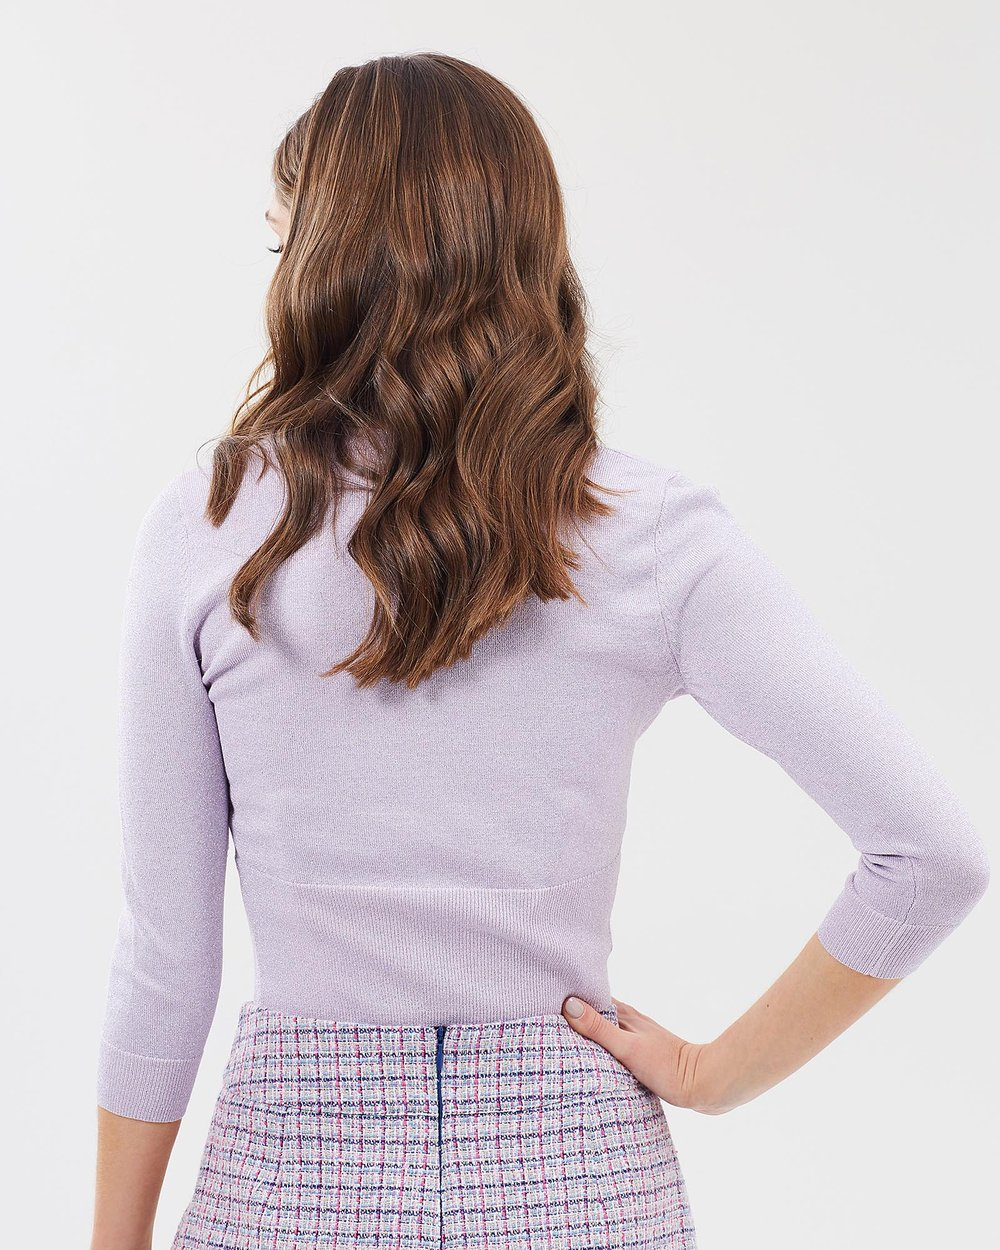 977cdf9b434 Chessie Shimmer 3 4 Sleeve Cardi by Review Online